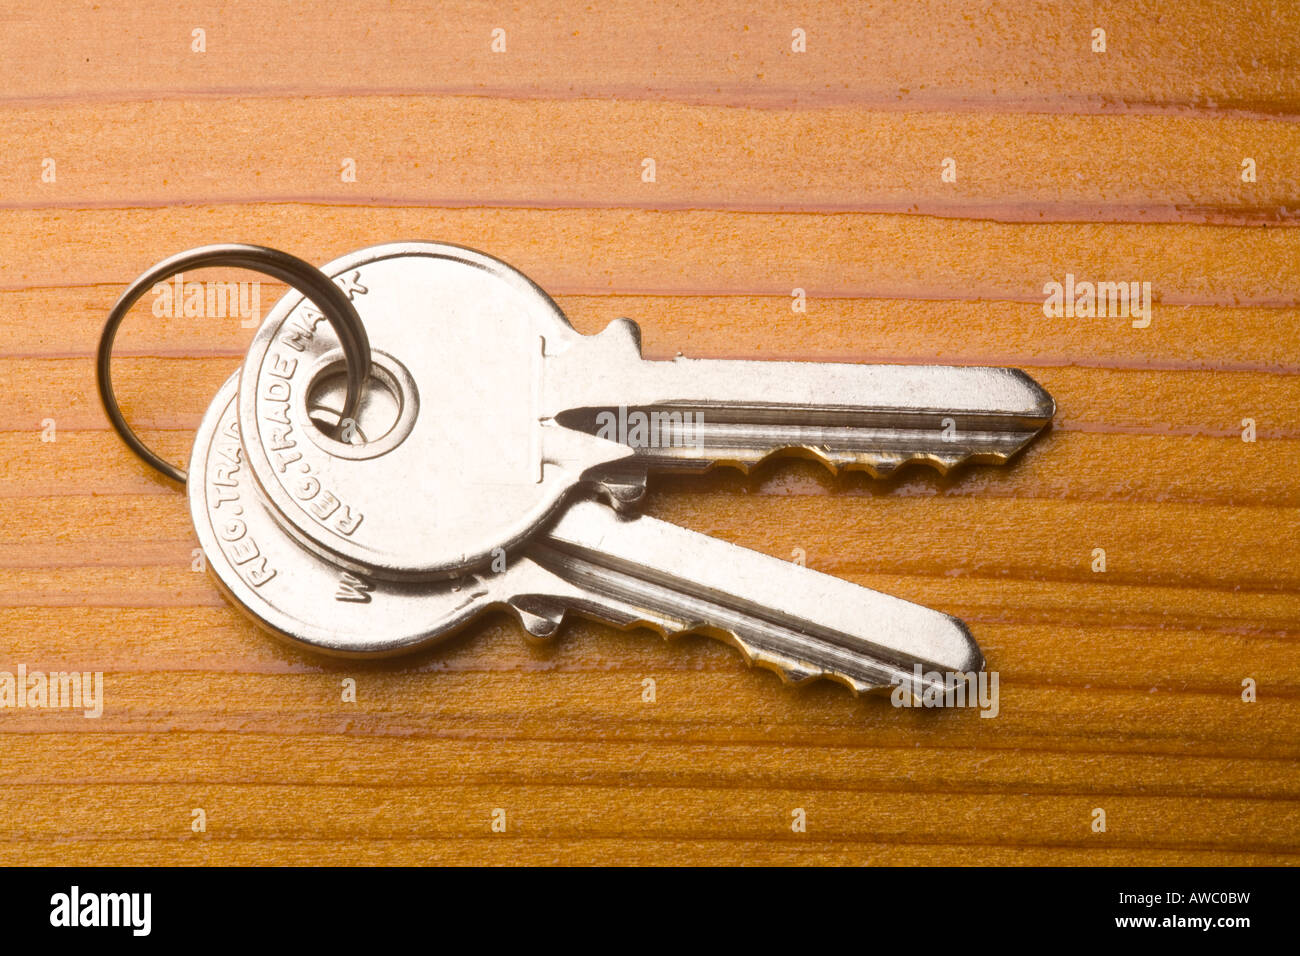 Pair of house keys on wooden table Stock Photo, Royalty ...